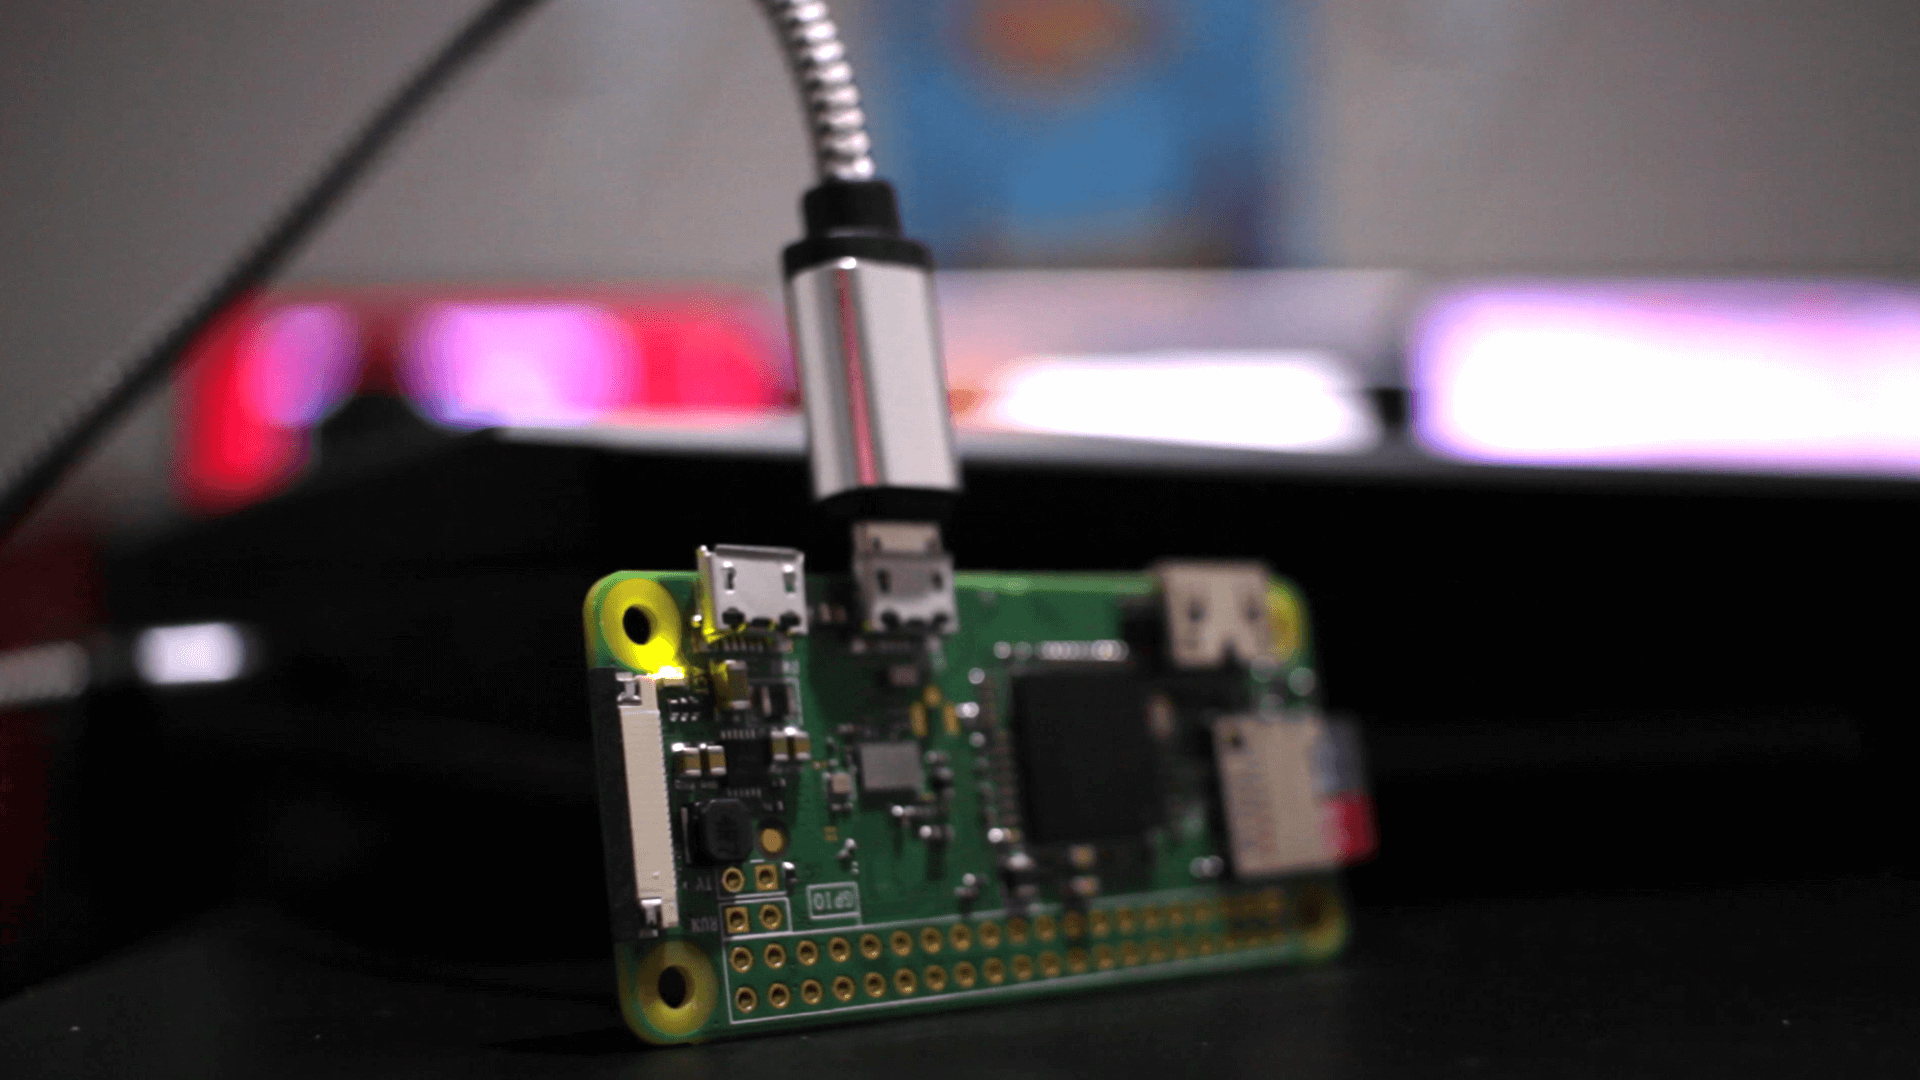 Connect to a Raspberry Pi Zero W via USB W/O a MicroHDMI Cable